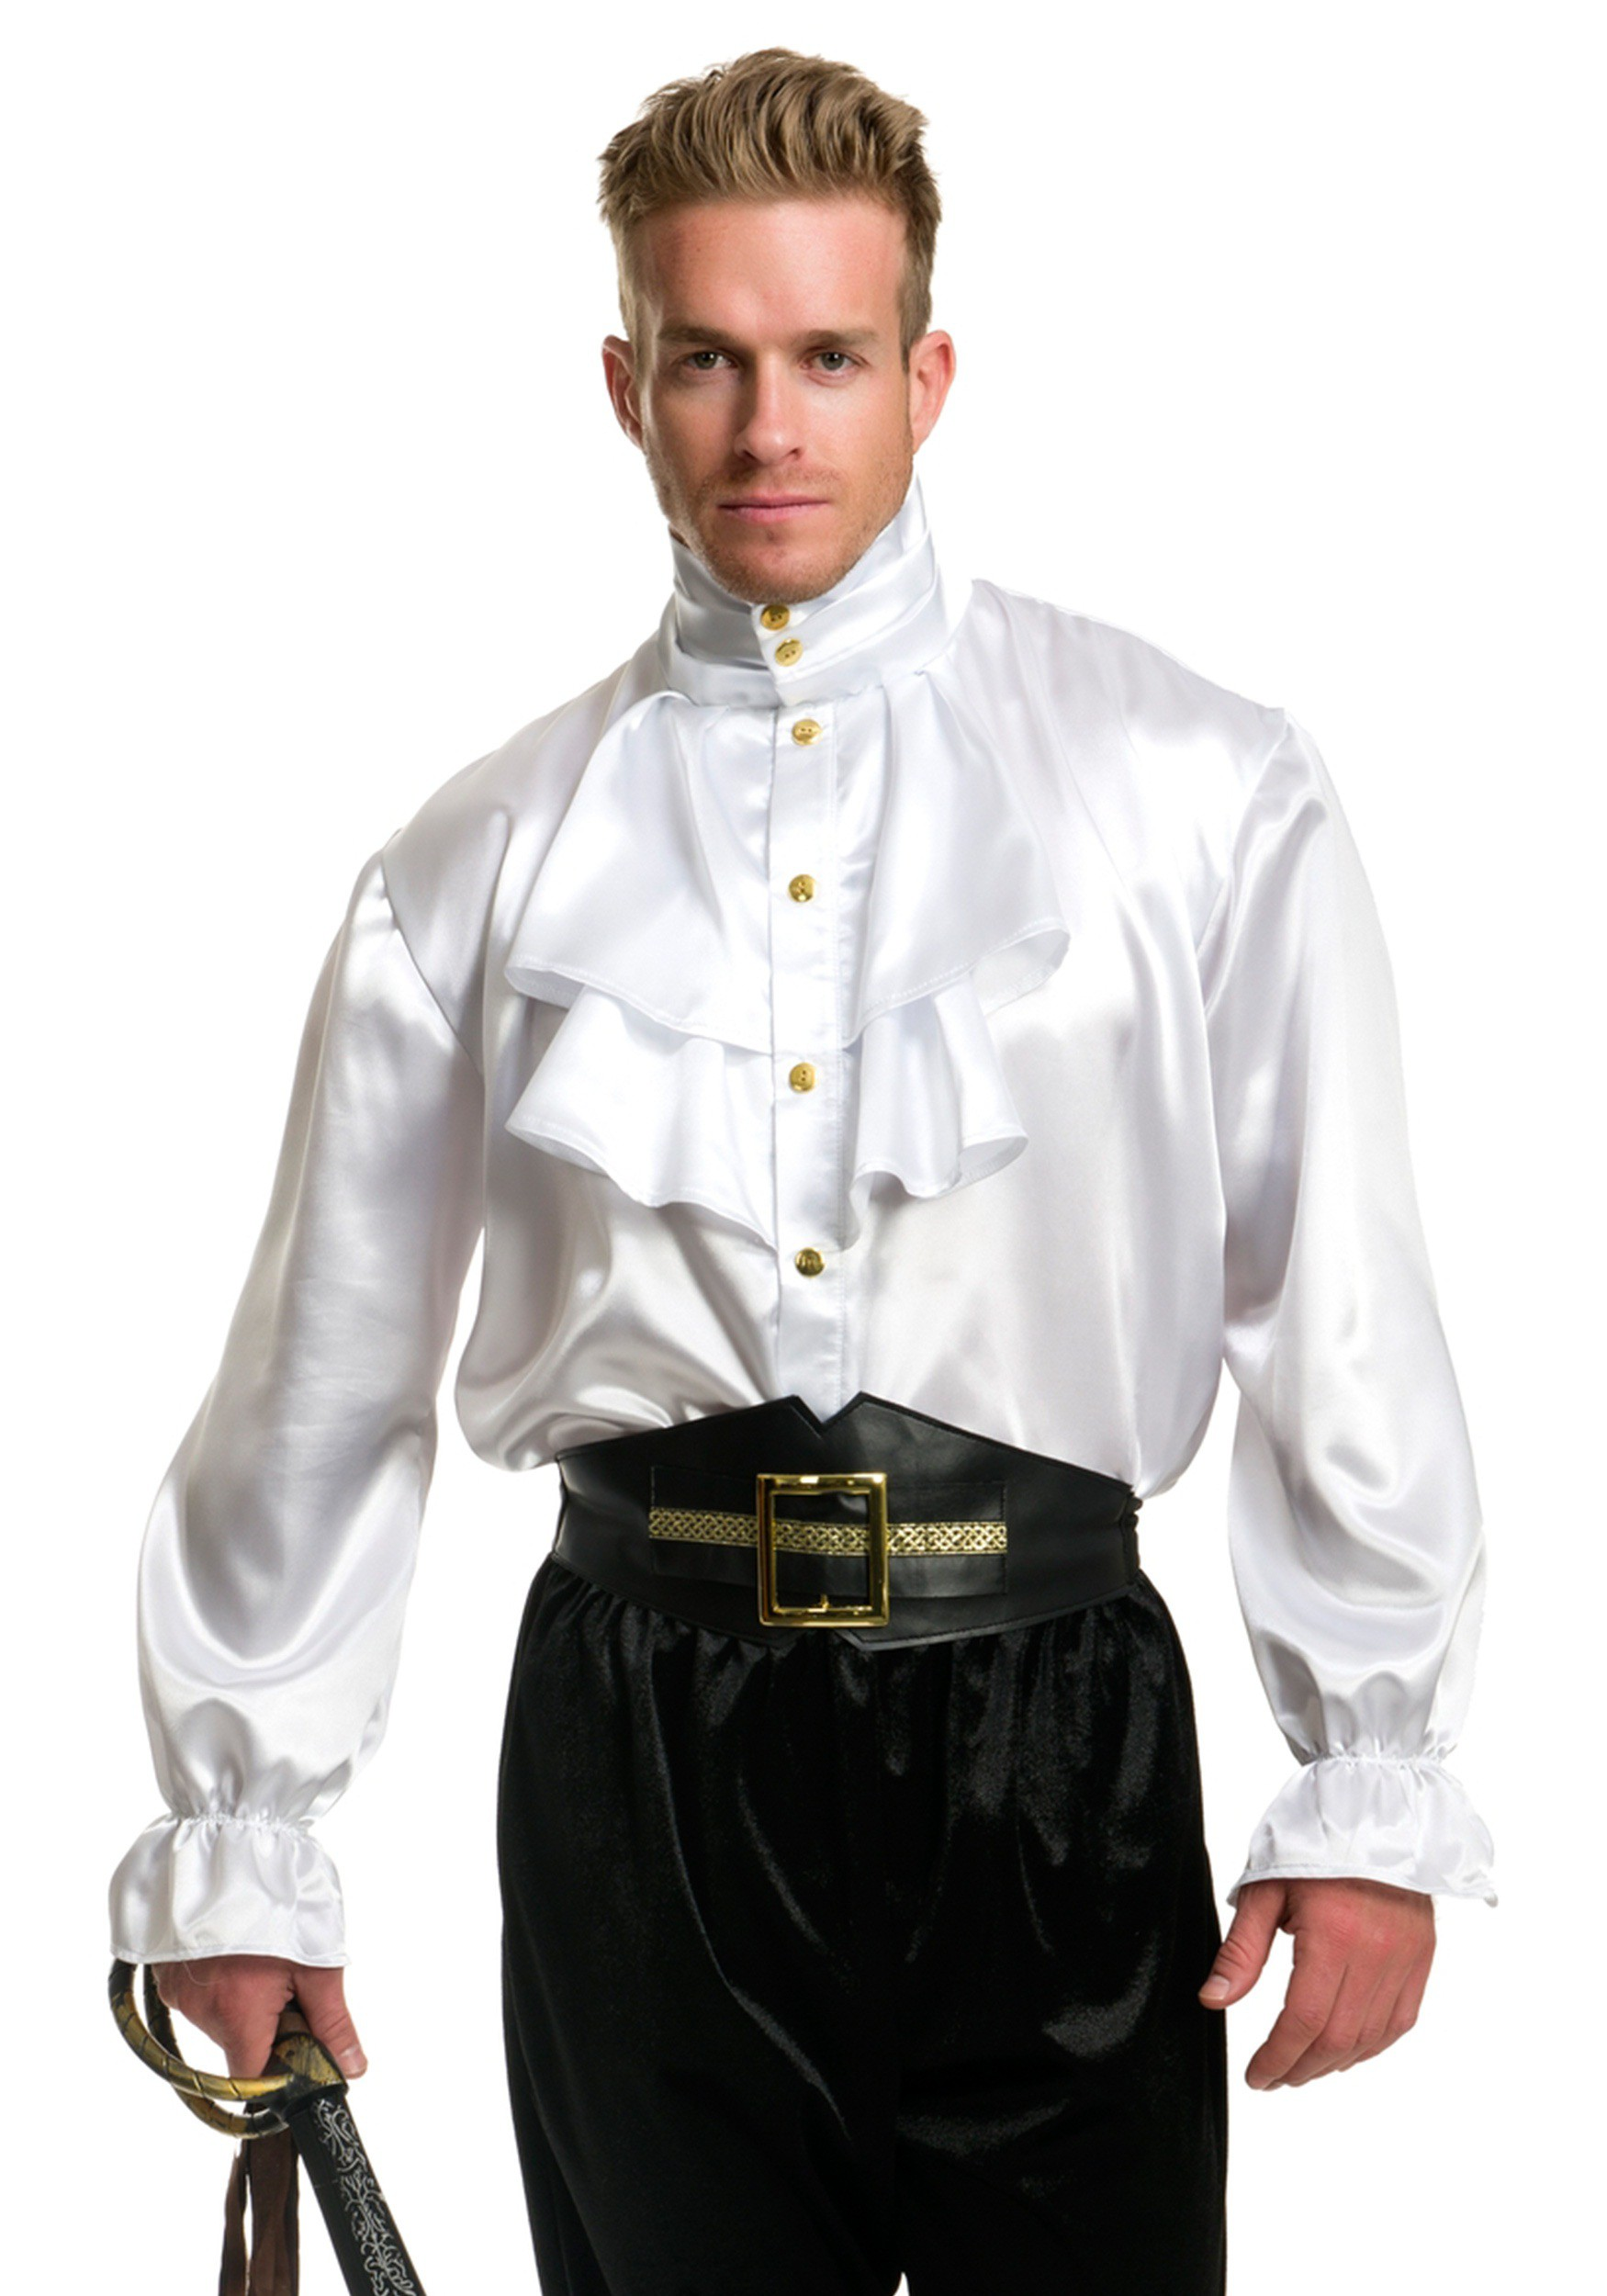 Mens White Satin Ruffle Shirt  sc 1 st  Halloween Costumes & Colonial Costumes u0026 Revolutionary War Outfits - HalloweenCostumes.com